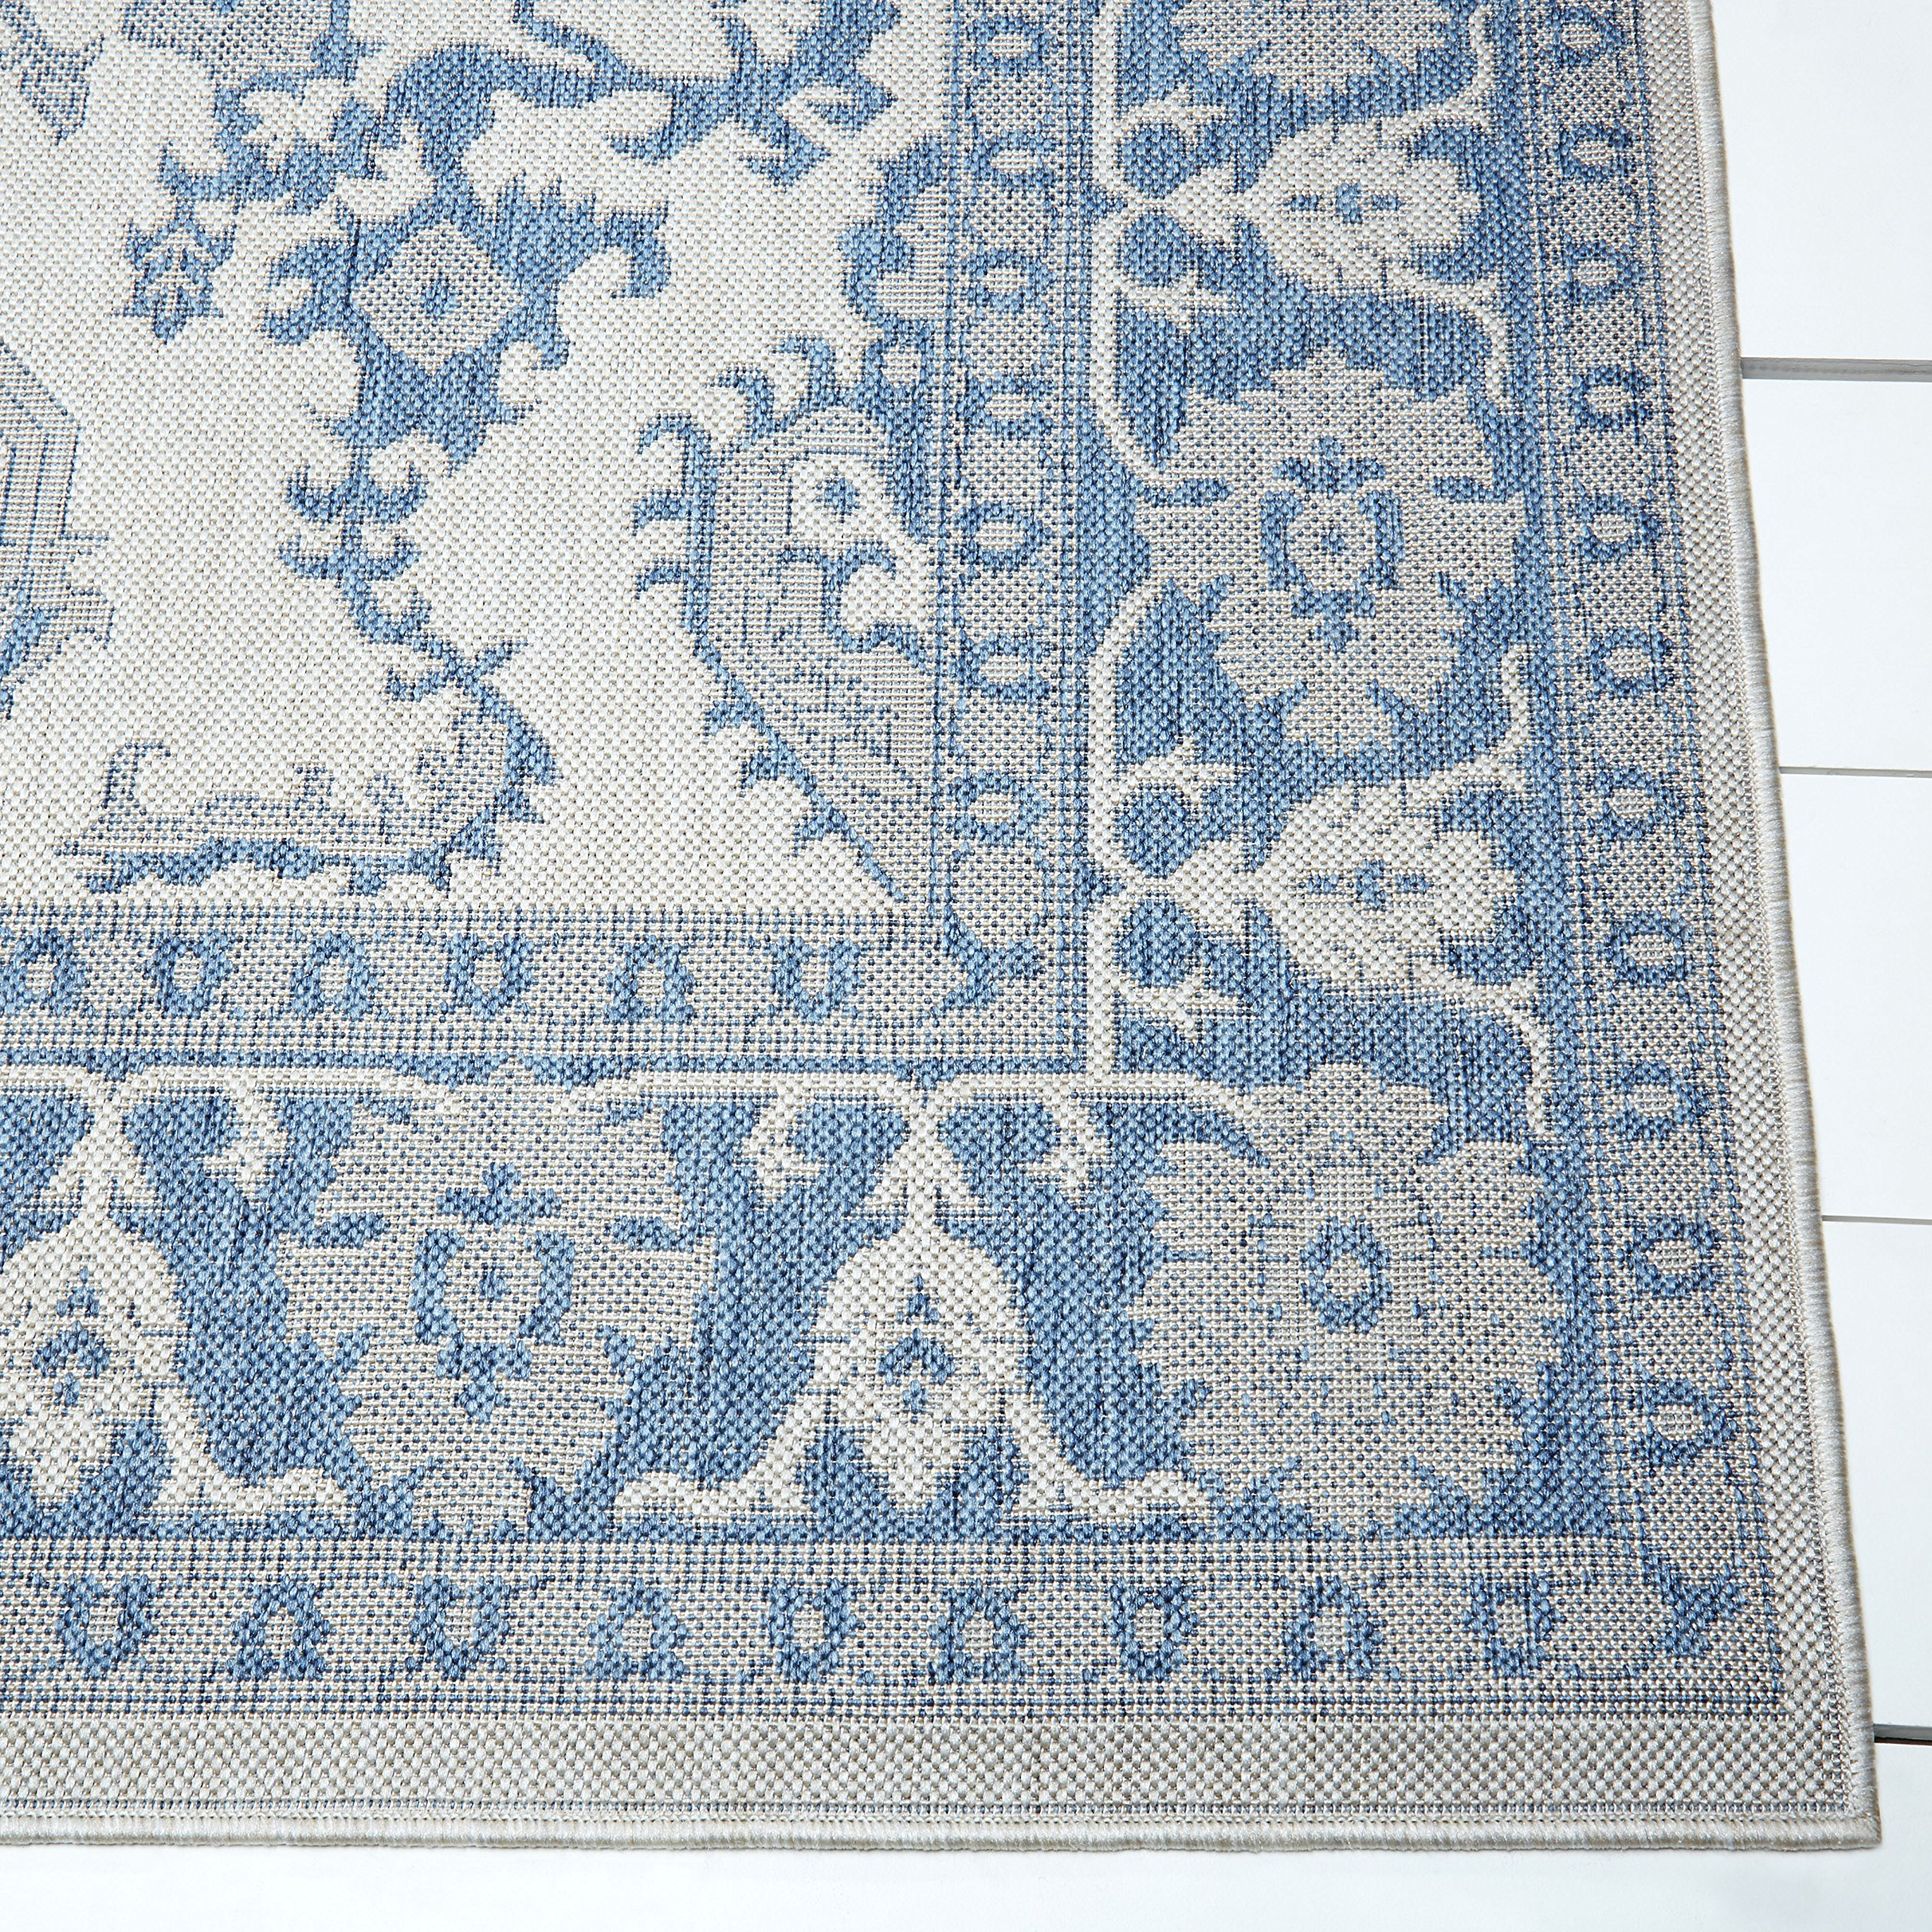 Home Dynamix Nicole Miller Patio Country Ayana Indoor/Outdoor Area Rug 7'9''x10'2'', Traditional Gray/Blue by Home Dynamix (Image #3)